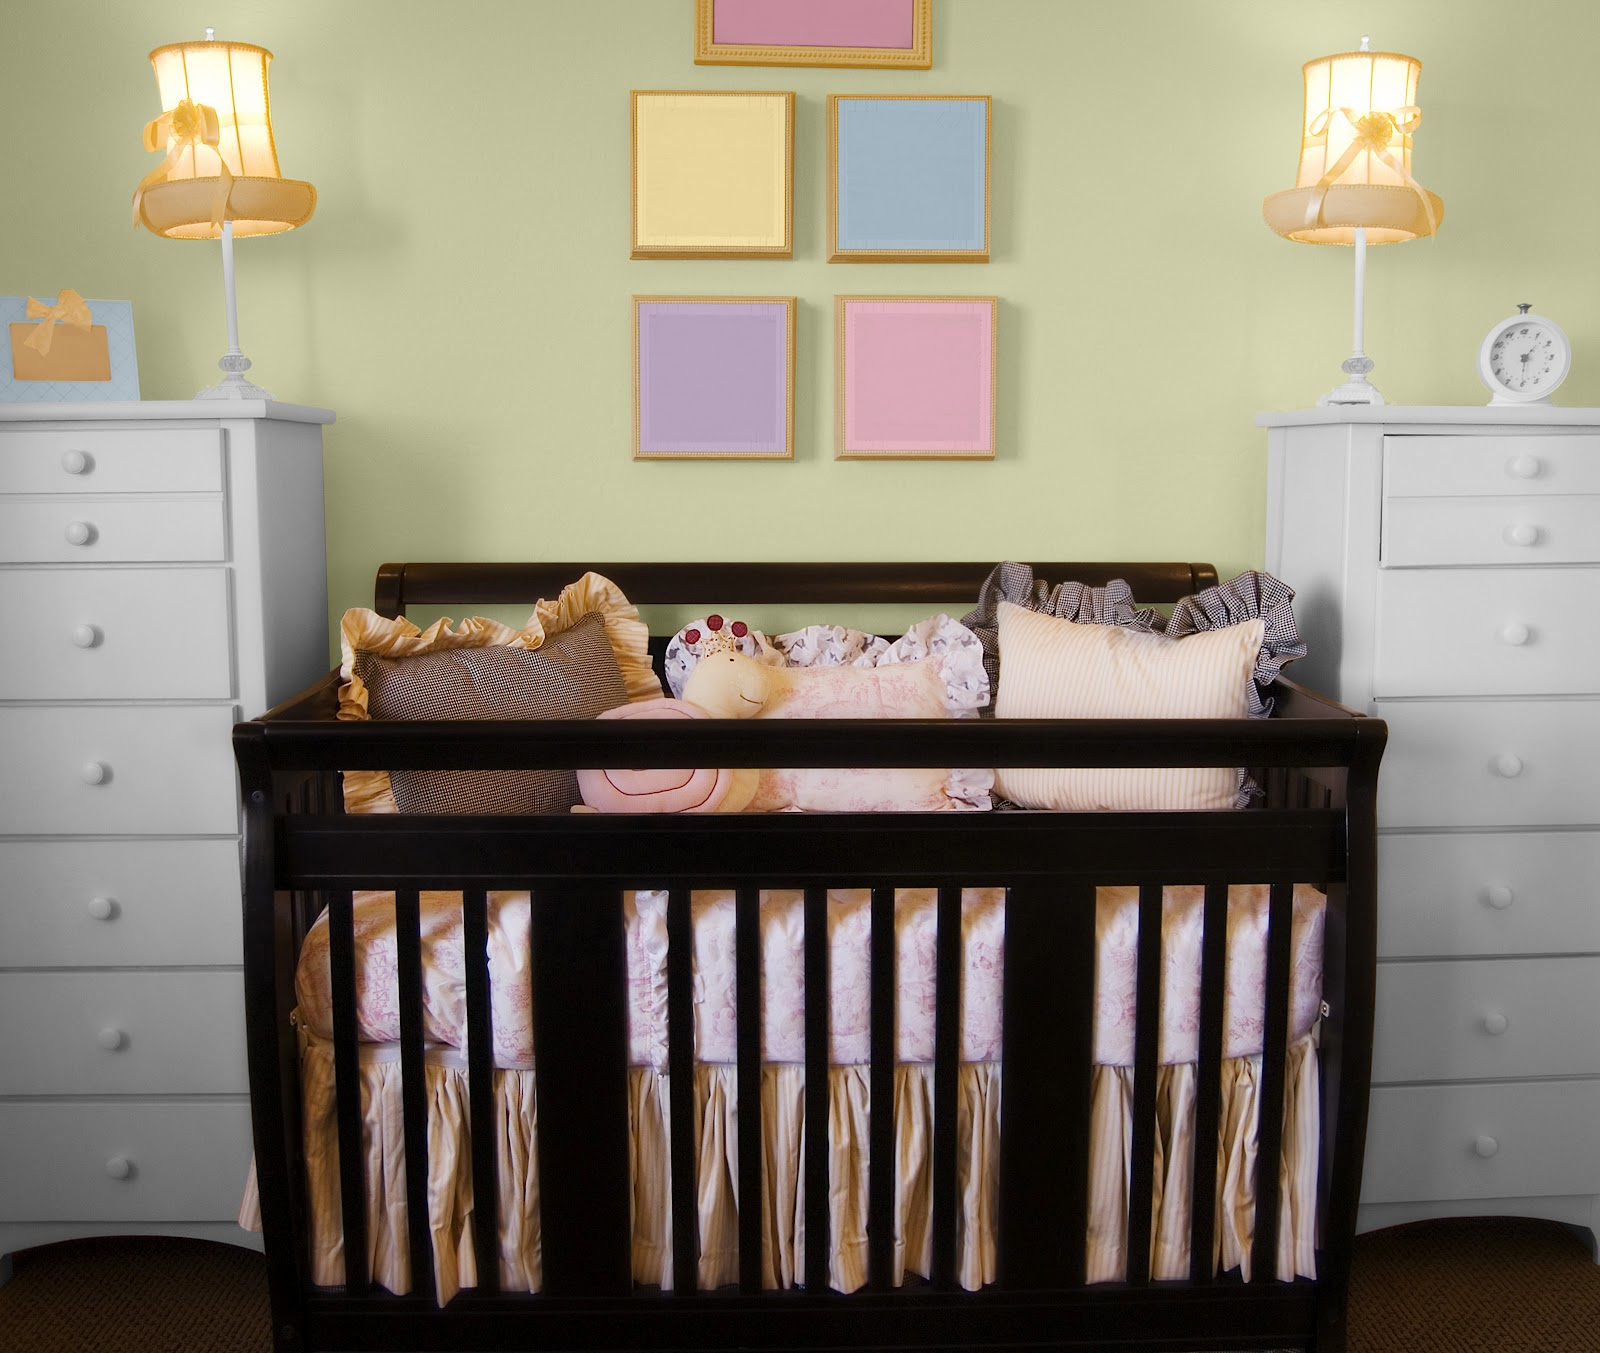 Top 10 Baby Nursery Room Colors (And Decorating Ideas